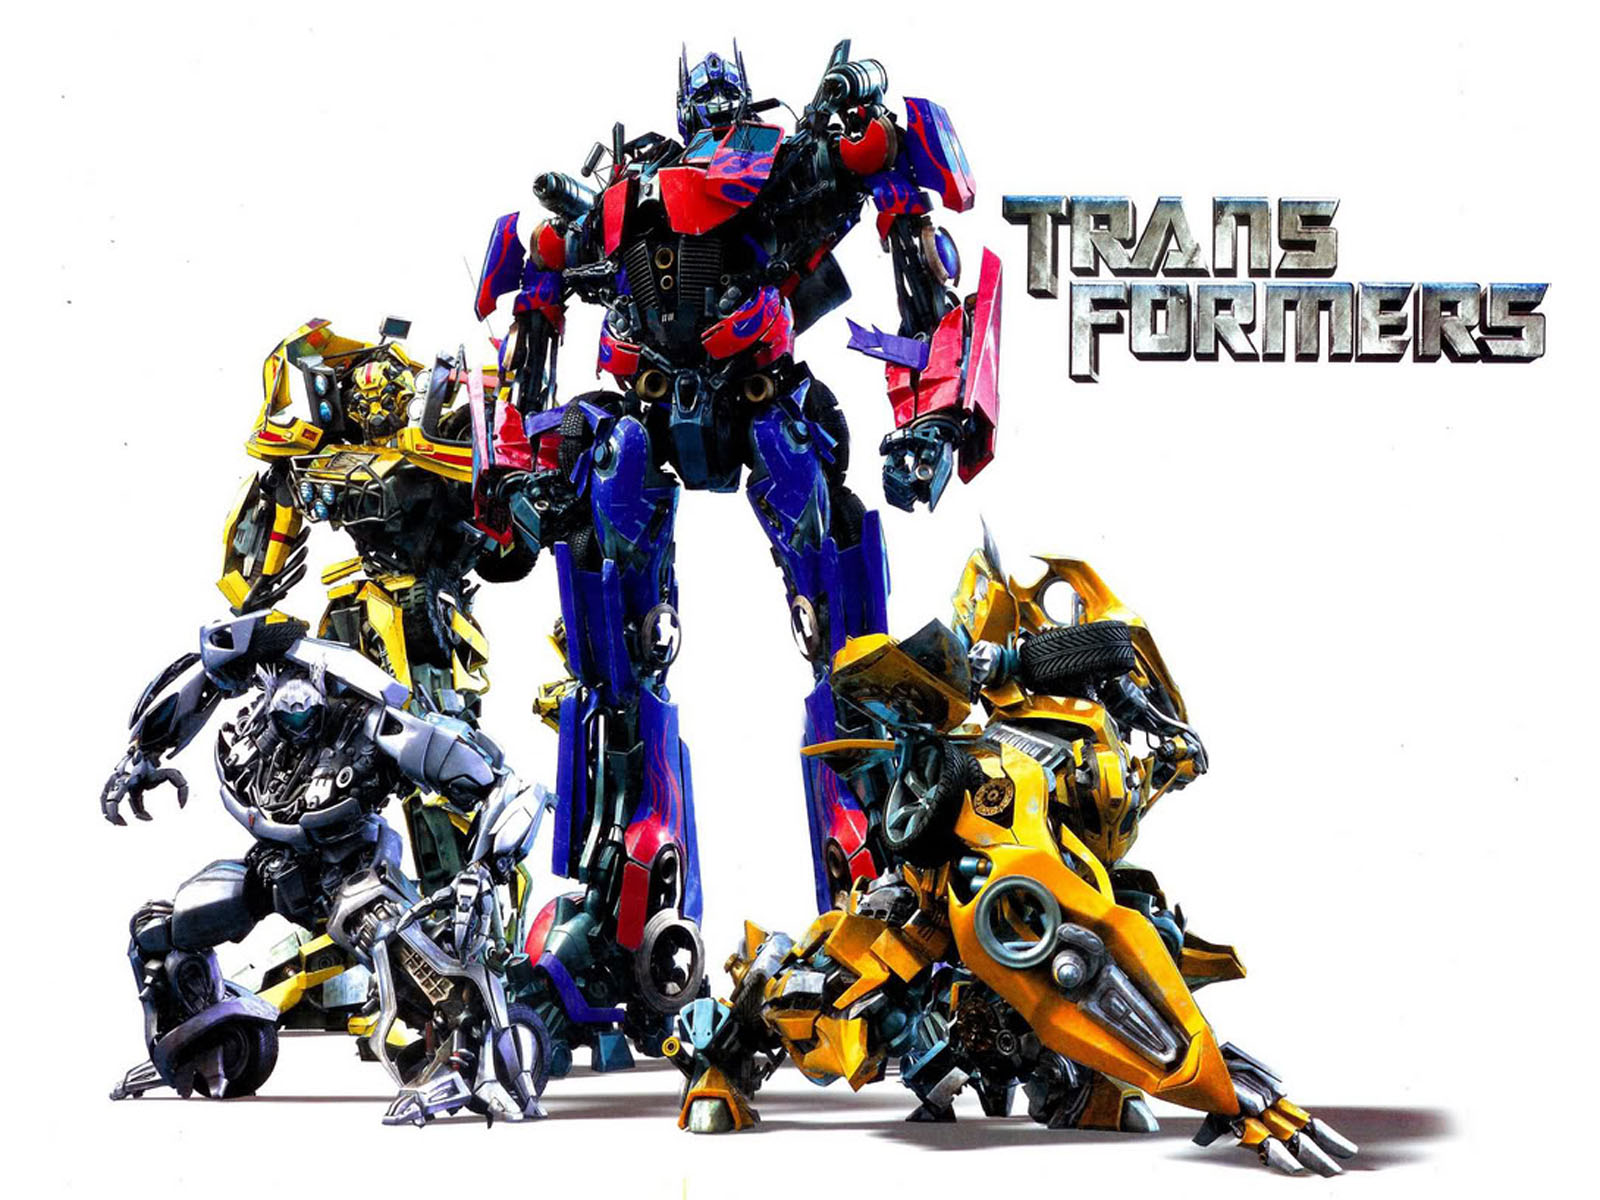 Transformers clipart free download clip royalty free stock Free Transformers, Download Free Clip Art, Free Clip Art on ... clip royalty free stock